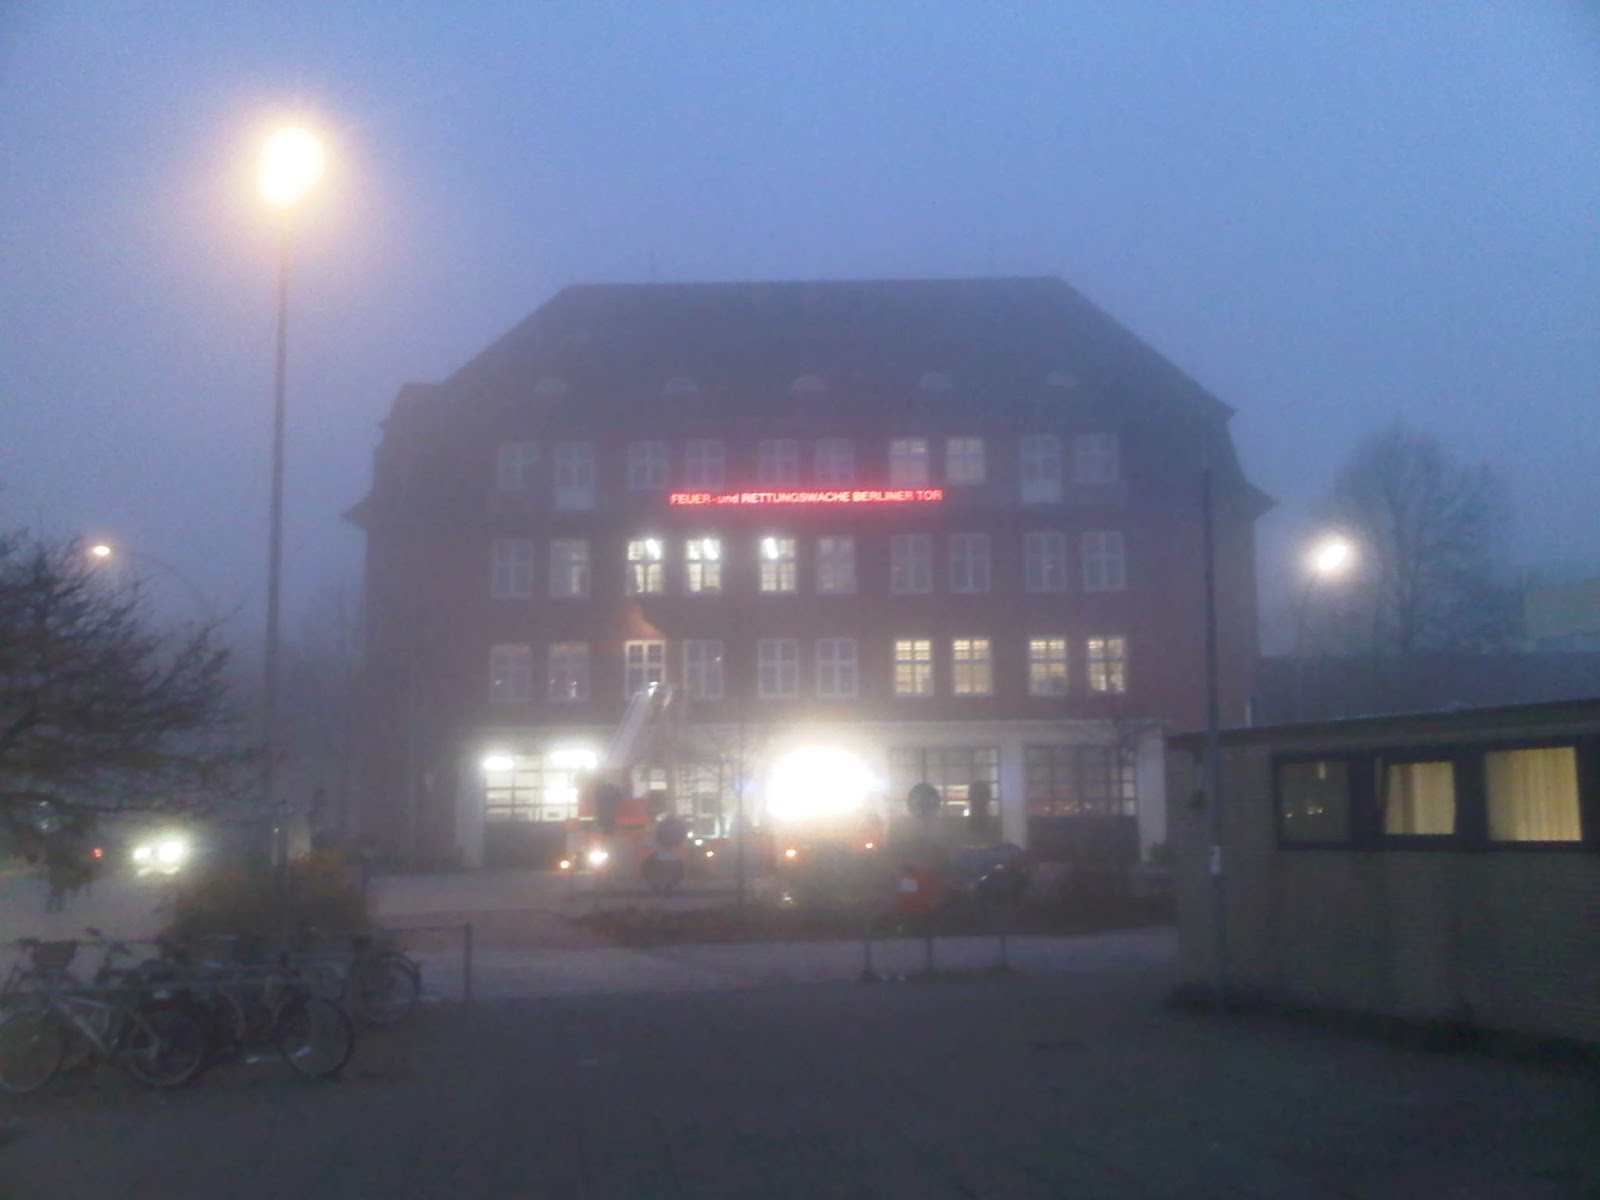 Feuerwache Berliner Tor im Nebel - Fire-Department Berliner Tor in the fog